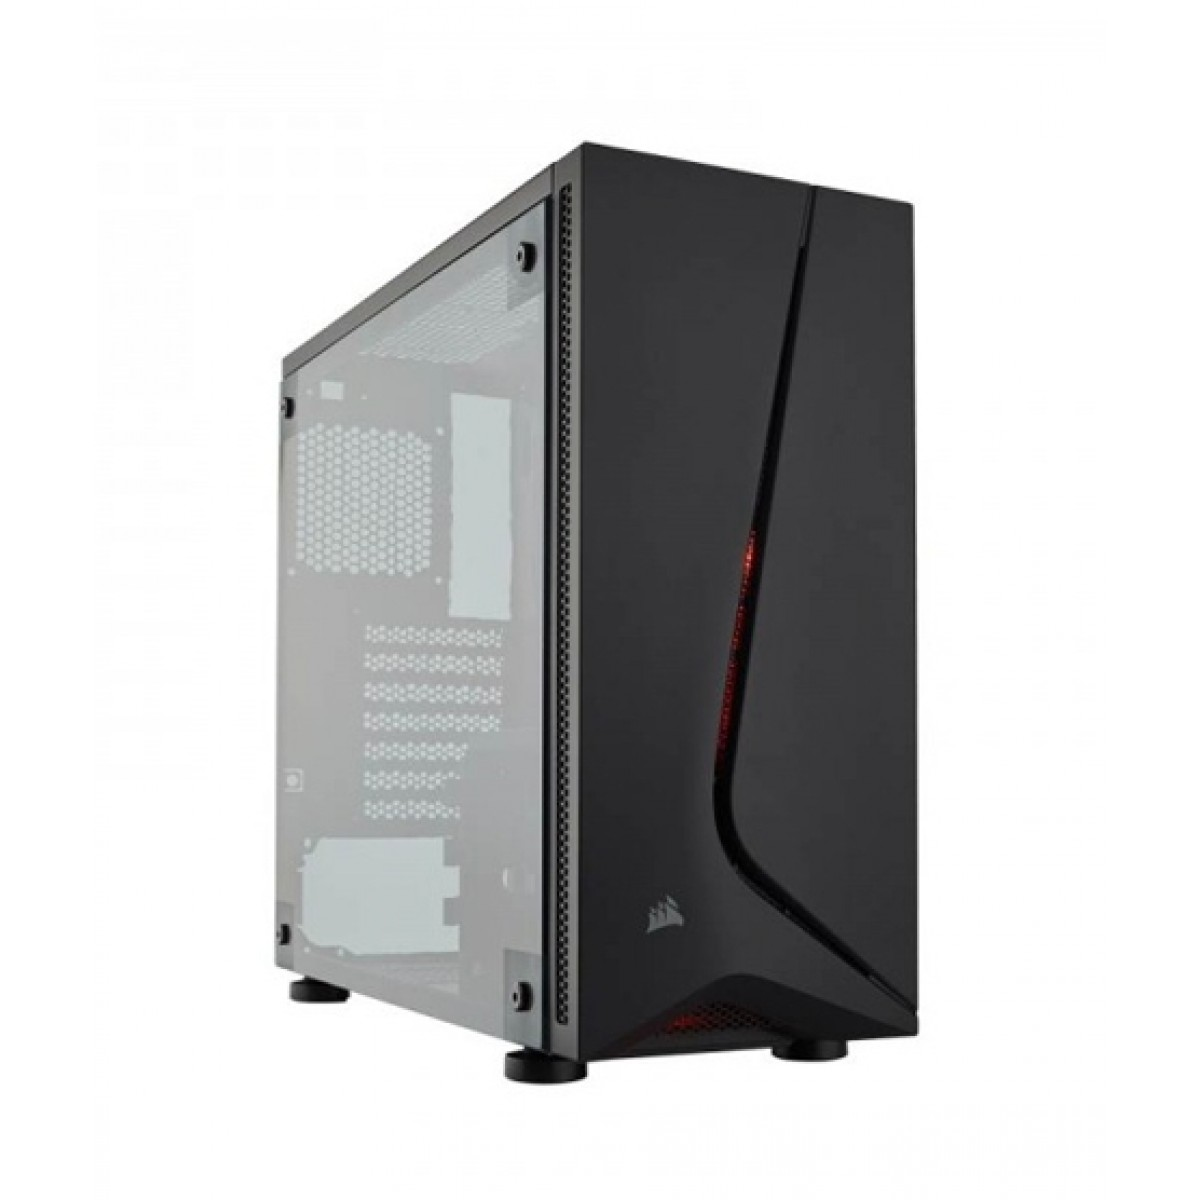 Corsair Spec 05 Mid Tower Gaming PC Case (CC-9011152-UK)